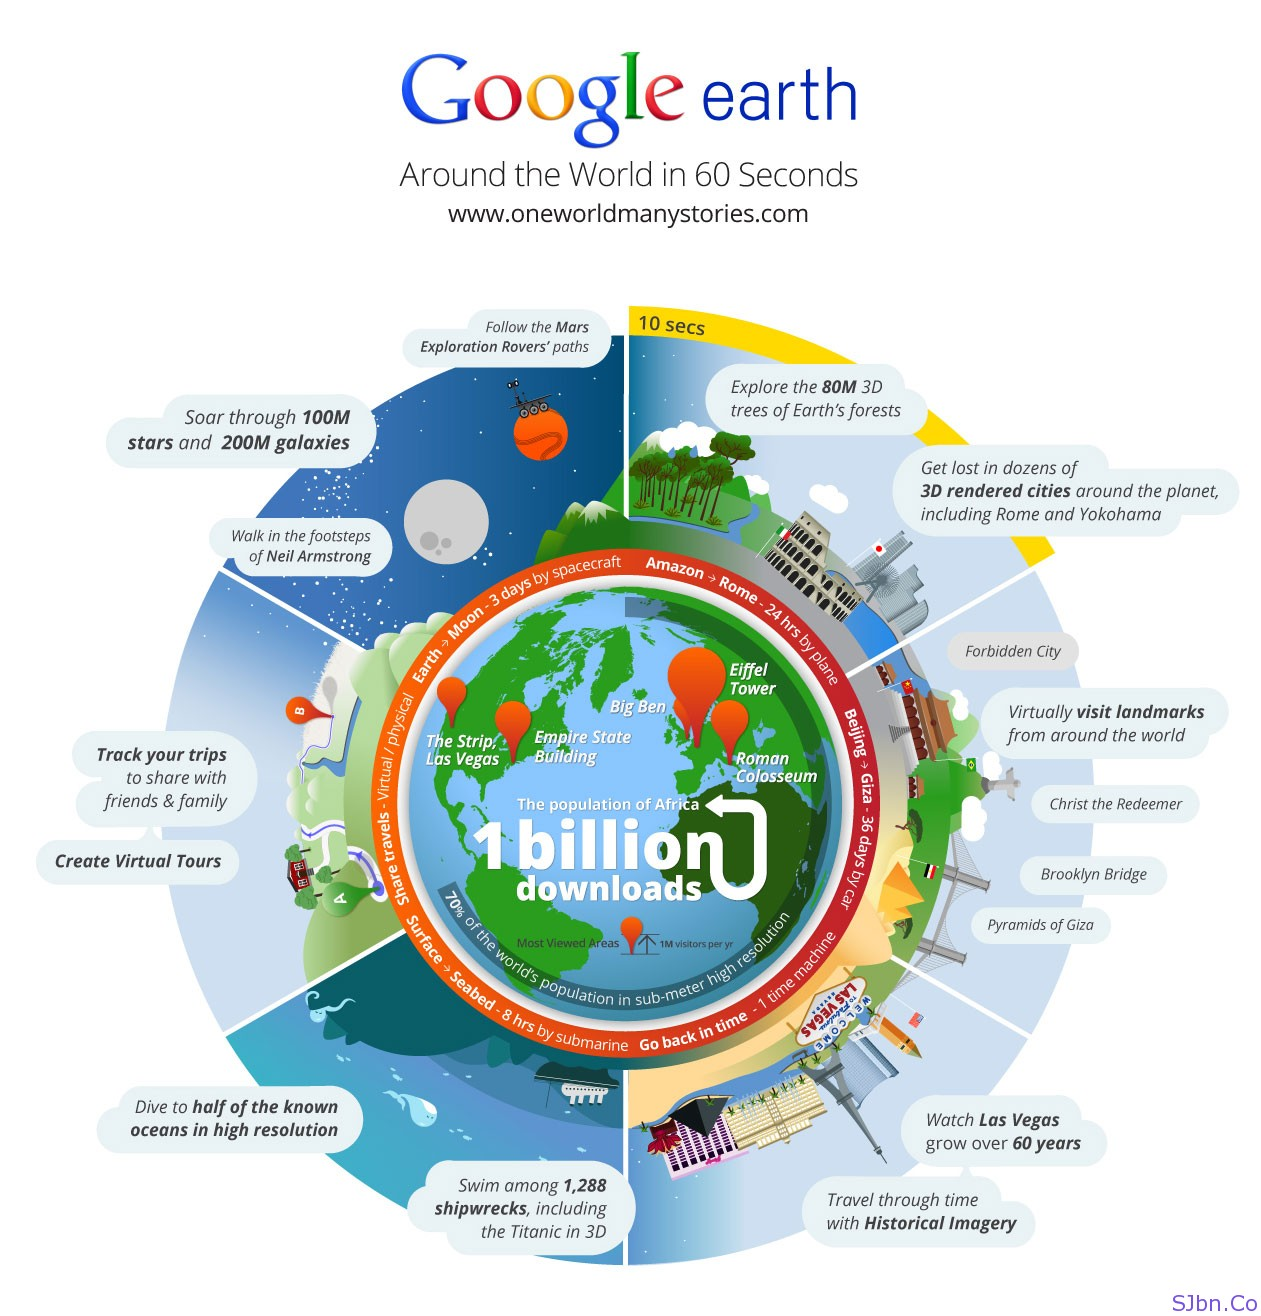 Google earth – Around the World in 60 Seconds